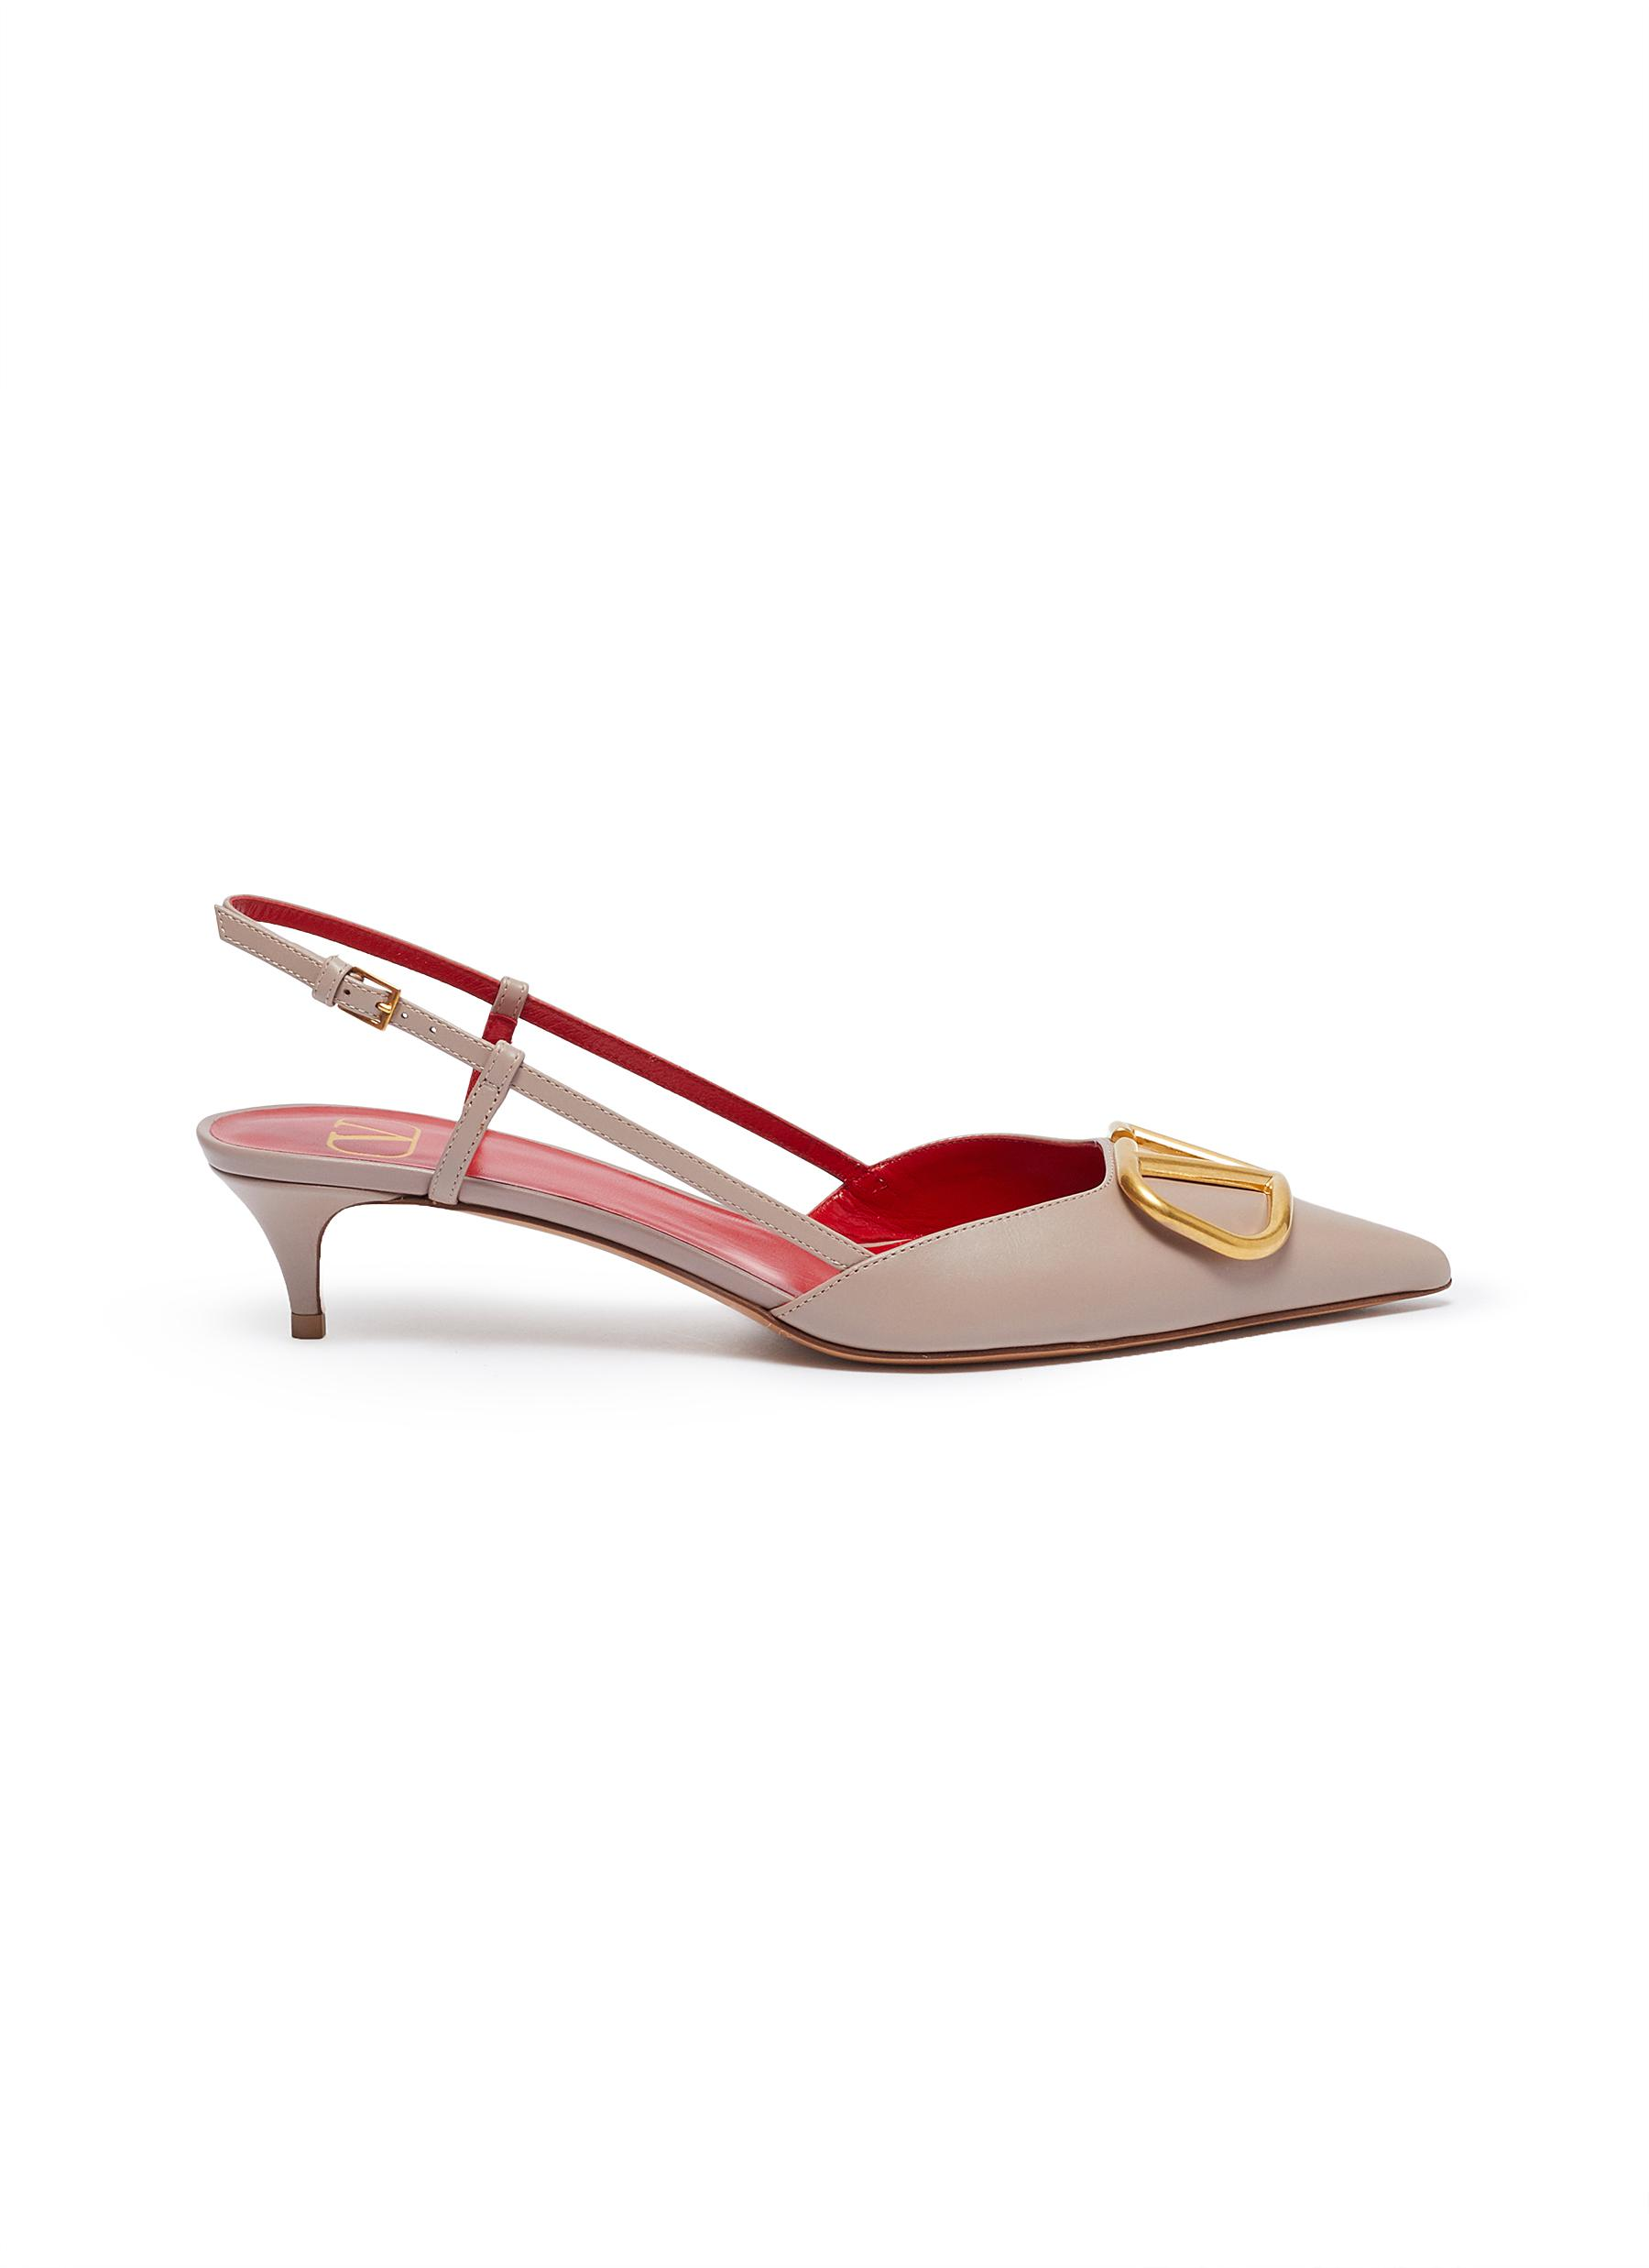 VLOGO leather strappy pumps by Valentino